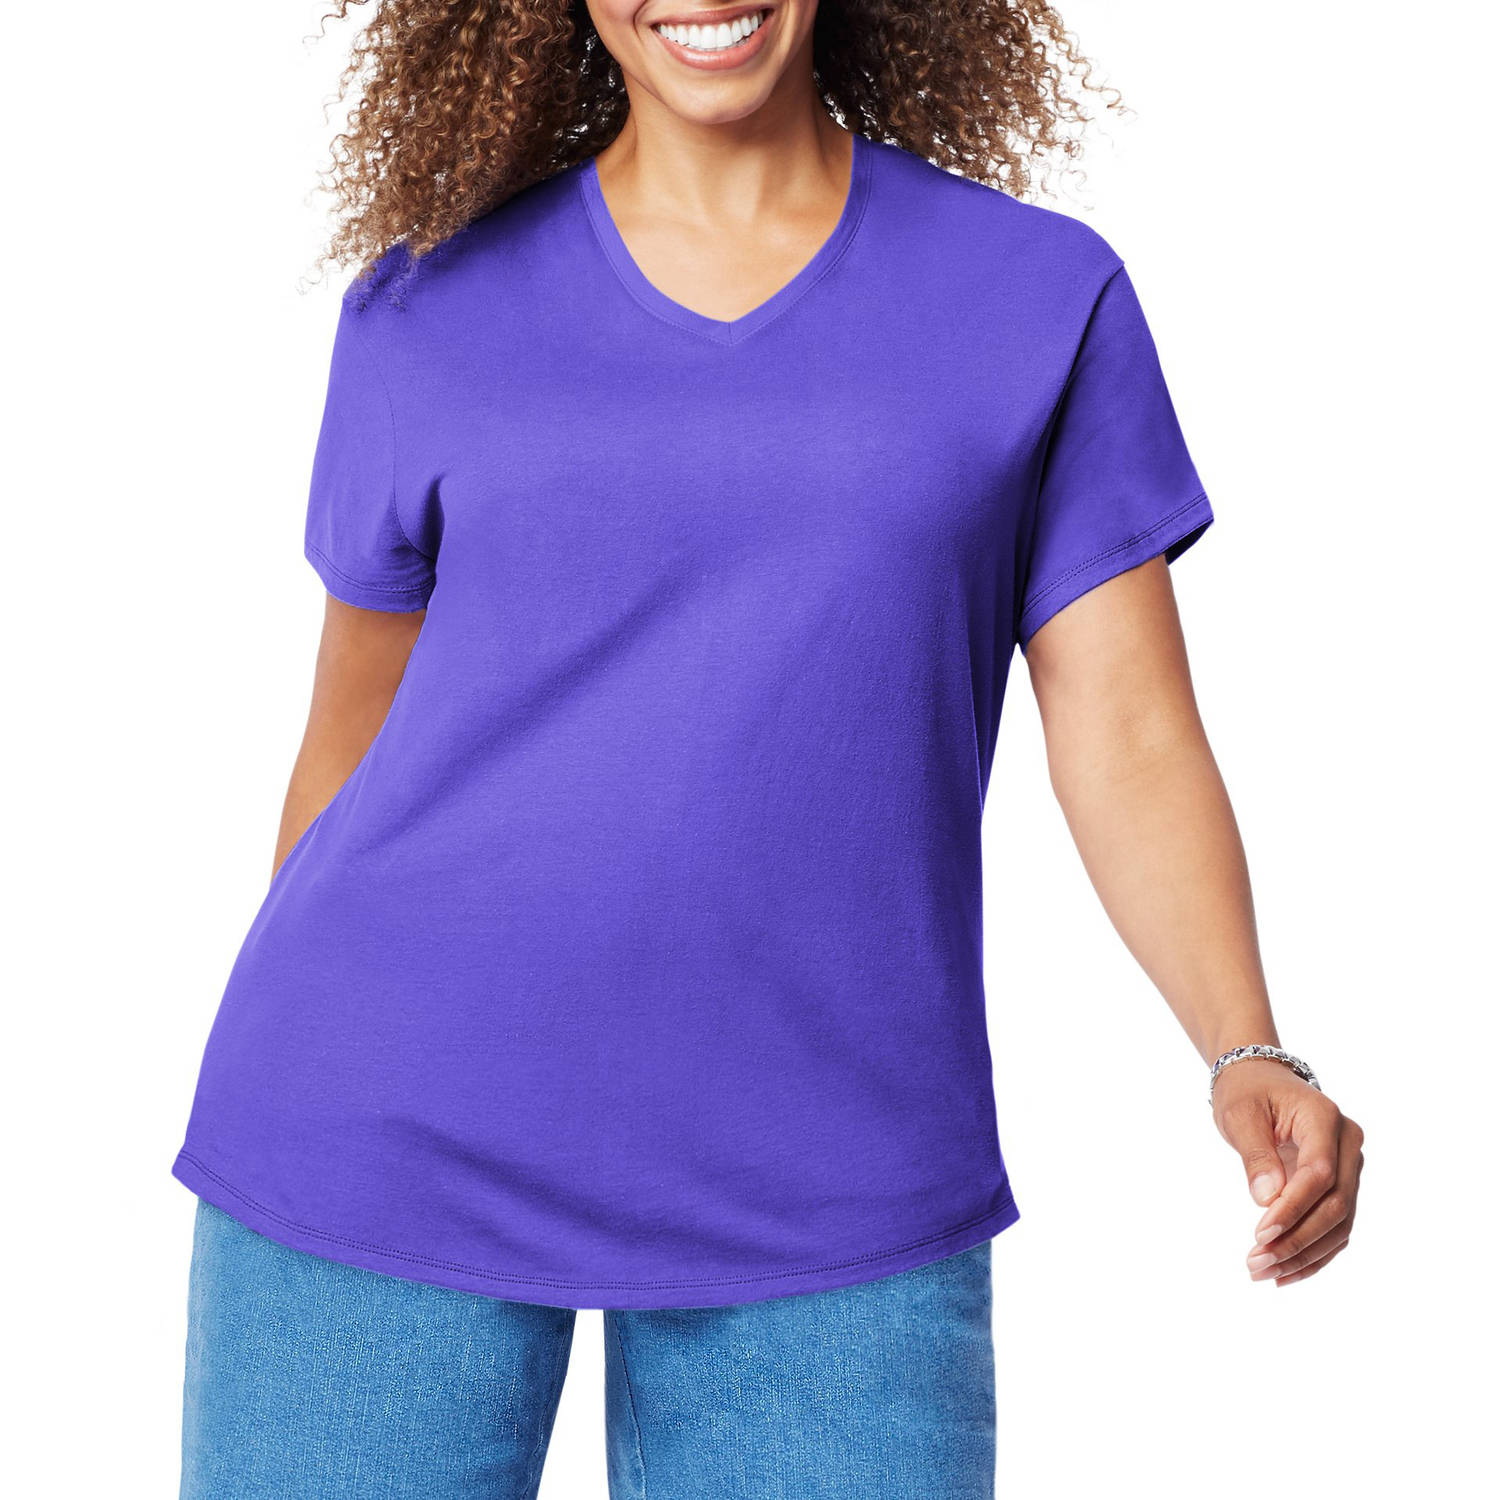 Just My Size Women's Plus-Size Short Sleeve V-Neck T-shirt